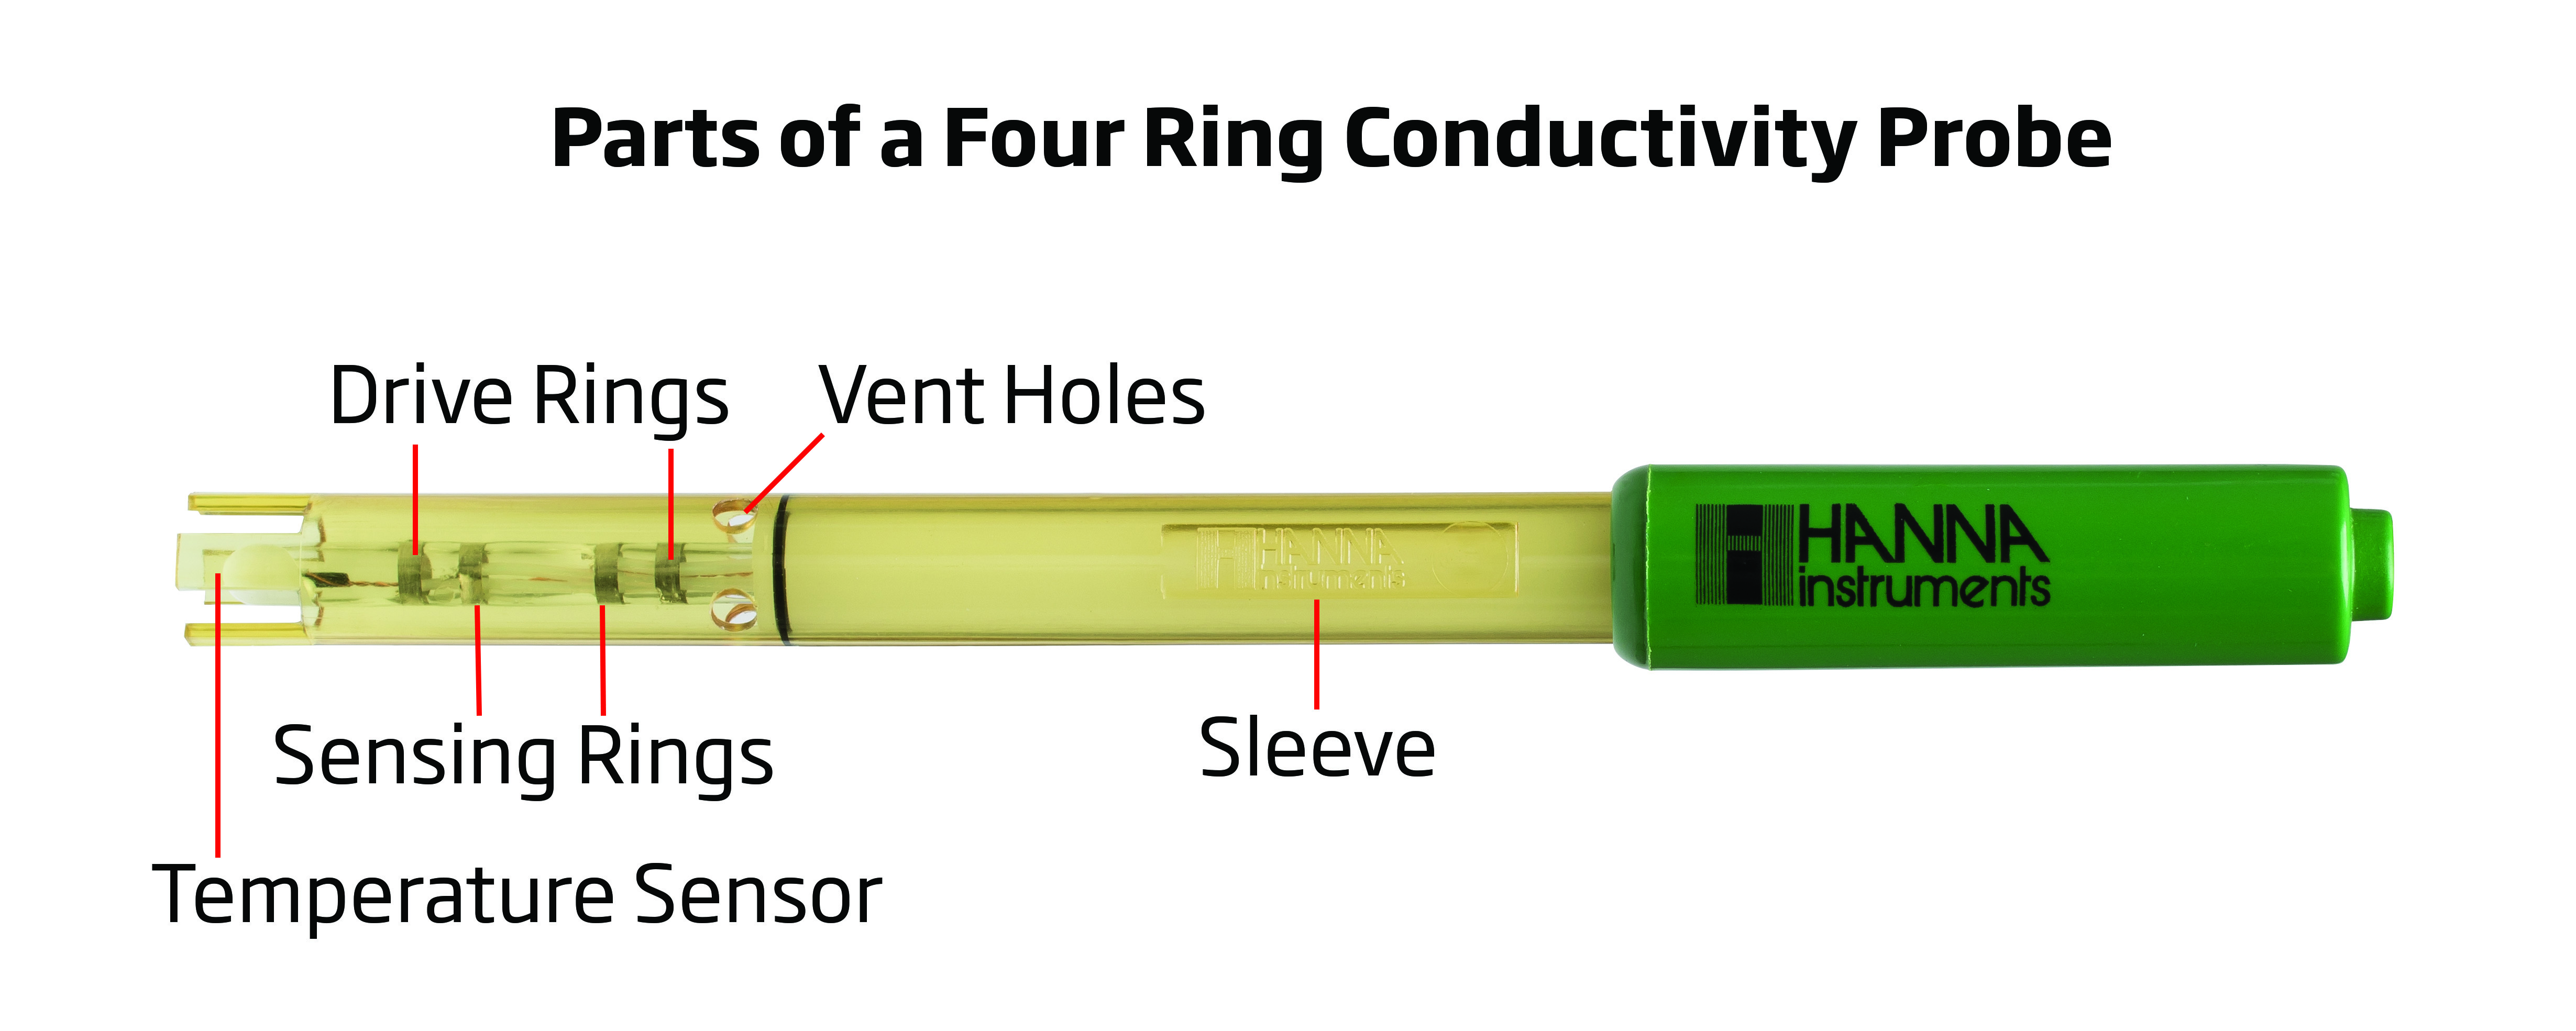 Diagram: Parts of a Four Ring Conductivity Probe